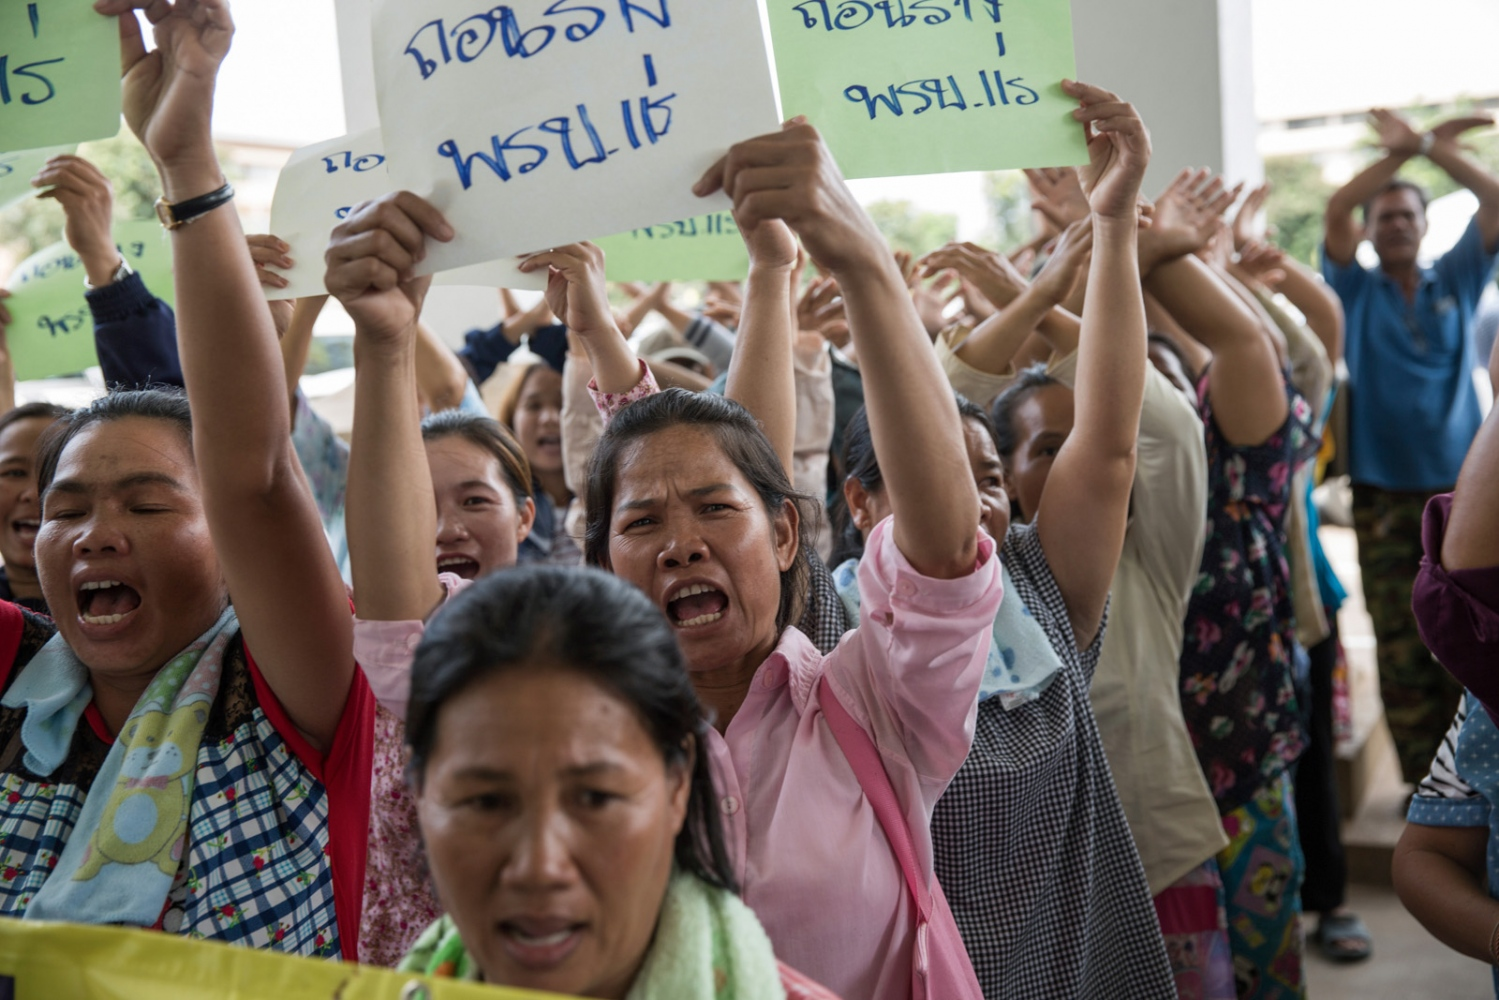 Members of the Khon Rak Ban Kerd environmental group and the Rak Ban Han Naew Group, a community-based group of villagers from Pak Chom District opposing a coal mining project gather at City Hall in Loei city in July 2016. They are submitting a petition to oppose the drafted mining act which could restrict public participation in mining permissions and reduce the robust environmental safeguards which have to be approved before operating a mine.